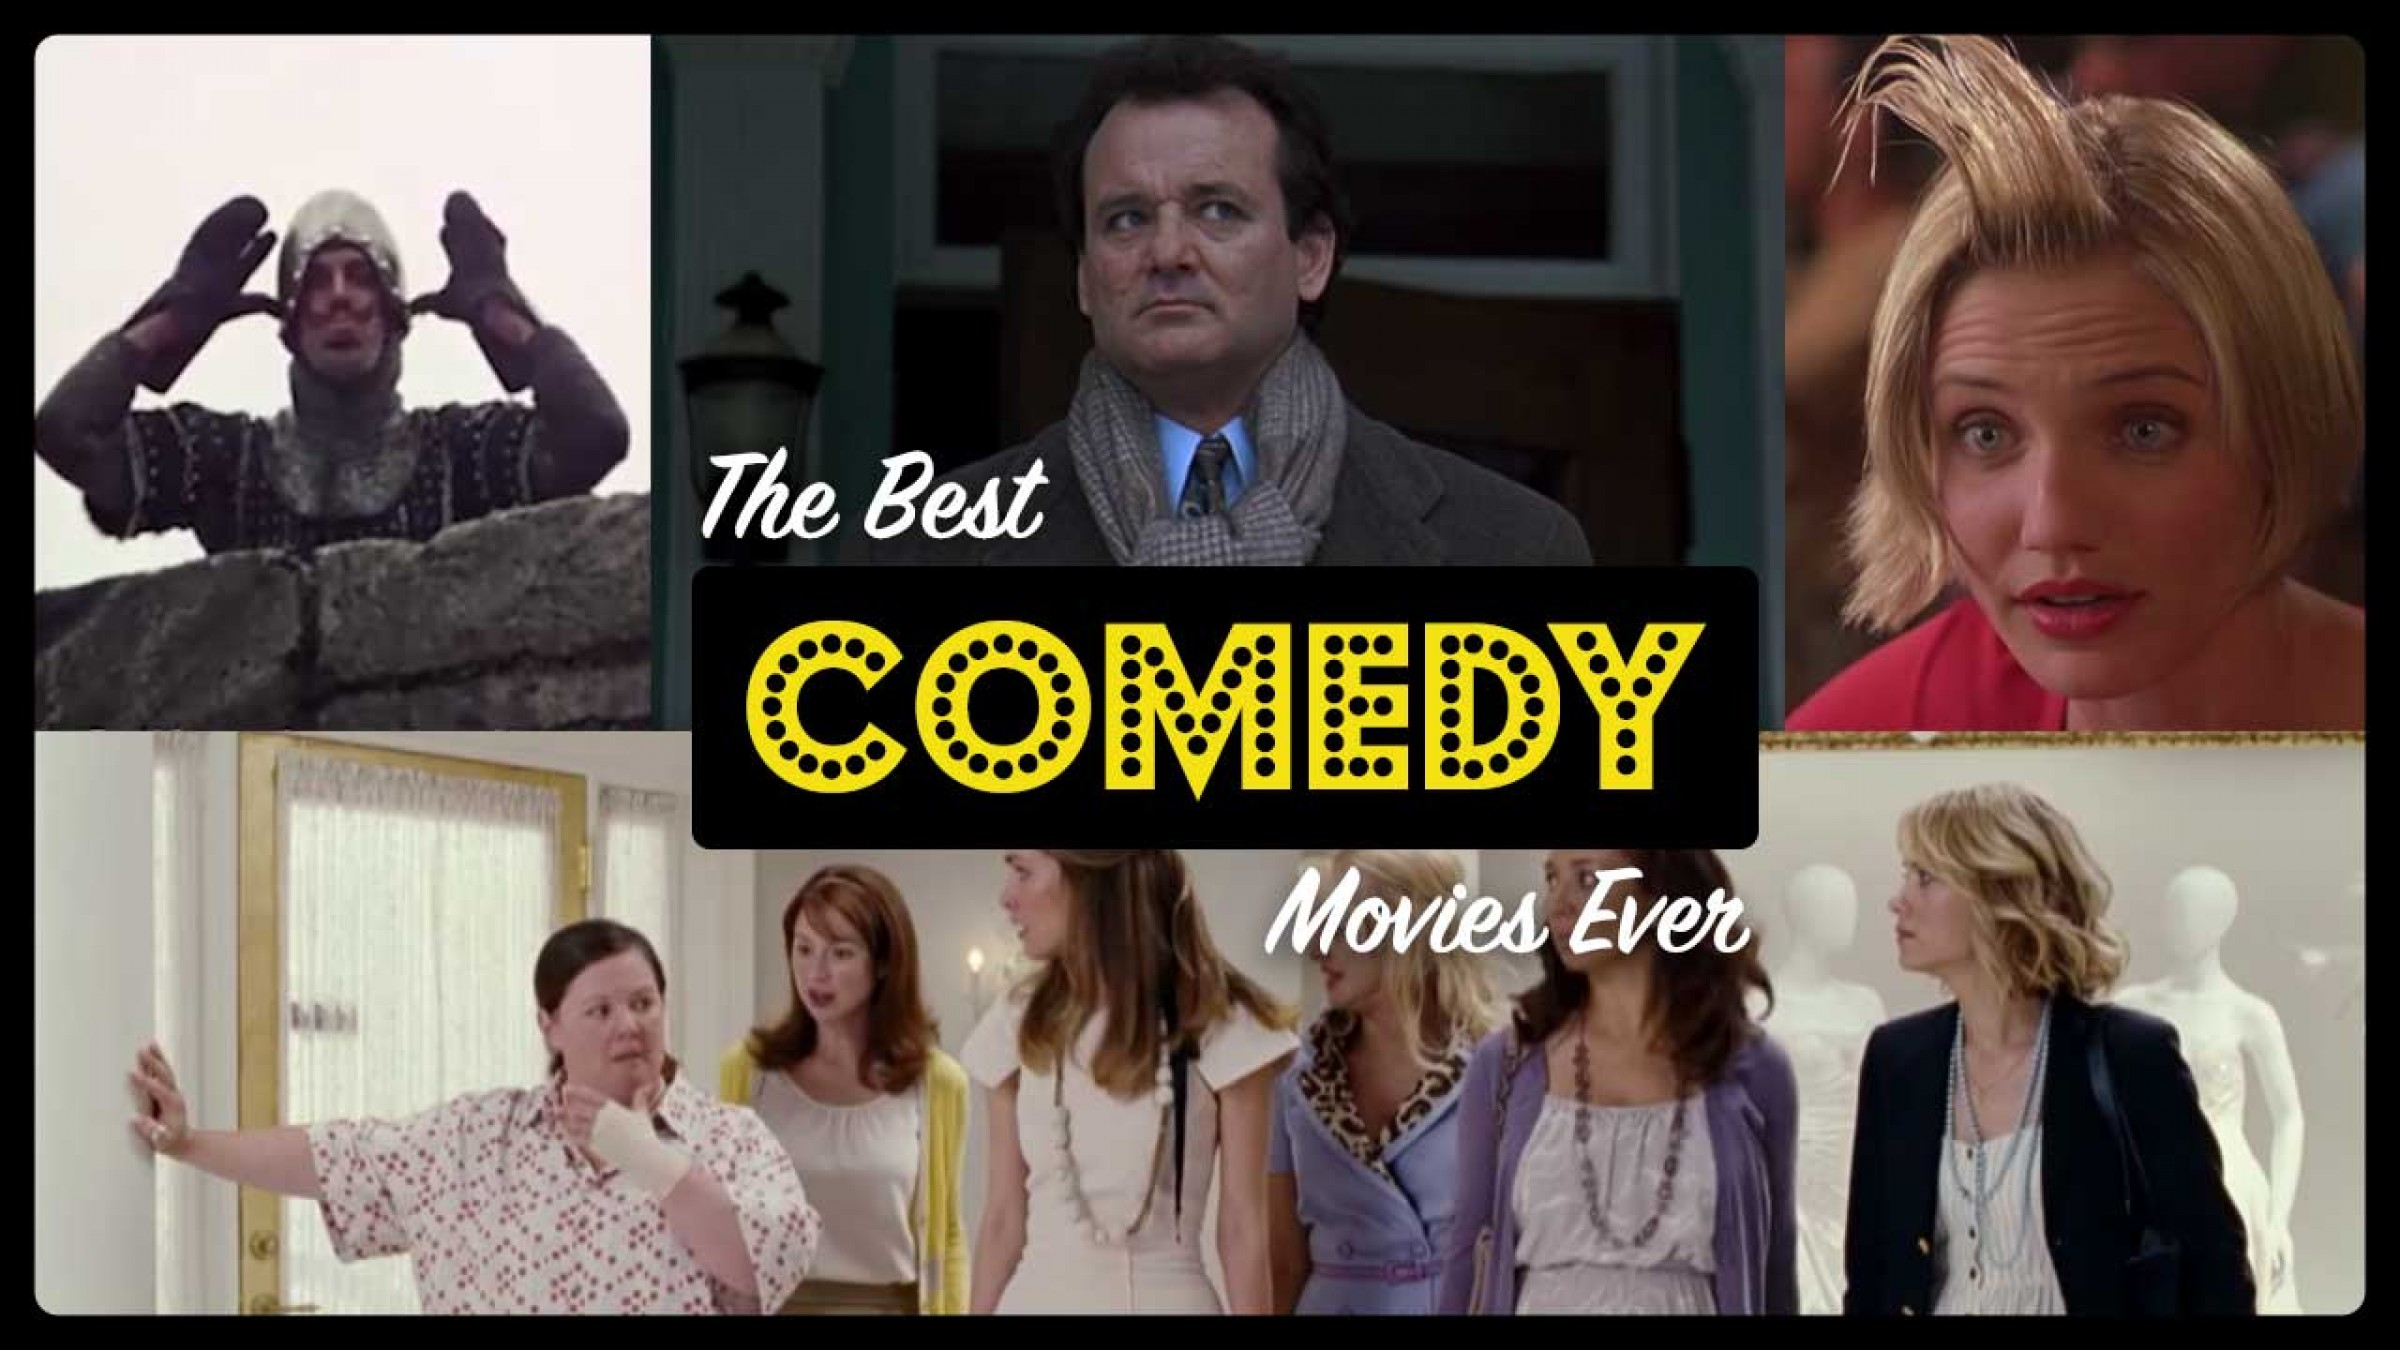 comedy movies movie nofilmschool downloads examples screenplay scripts ever some